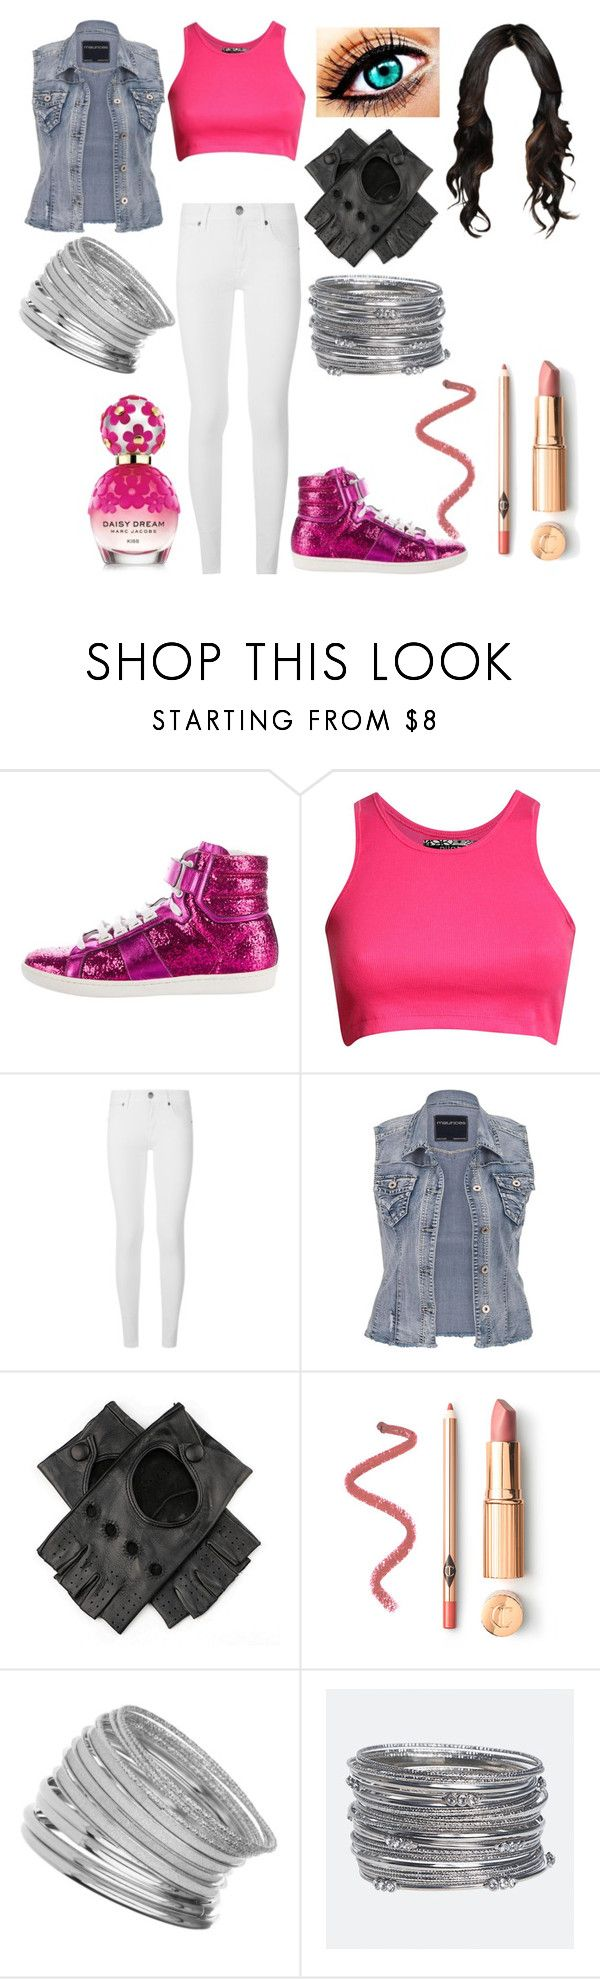 """""""Untitled #1017"""" by nerdynerdy ❤ liked on Polyvore featuring Yves Saint Laurent, Pilot, Burberry, maurices, Black, Miss Selfridge, Avenue and Marc Jacobs"""